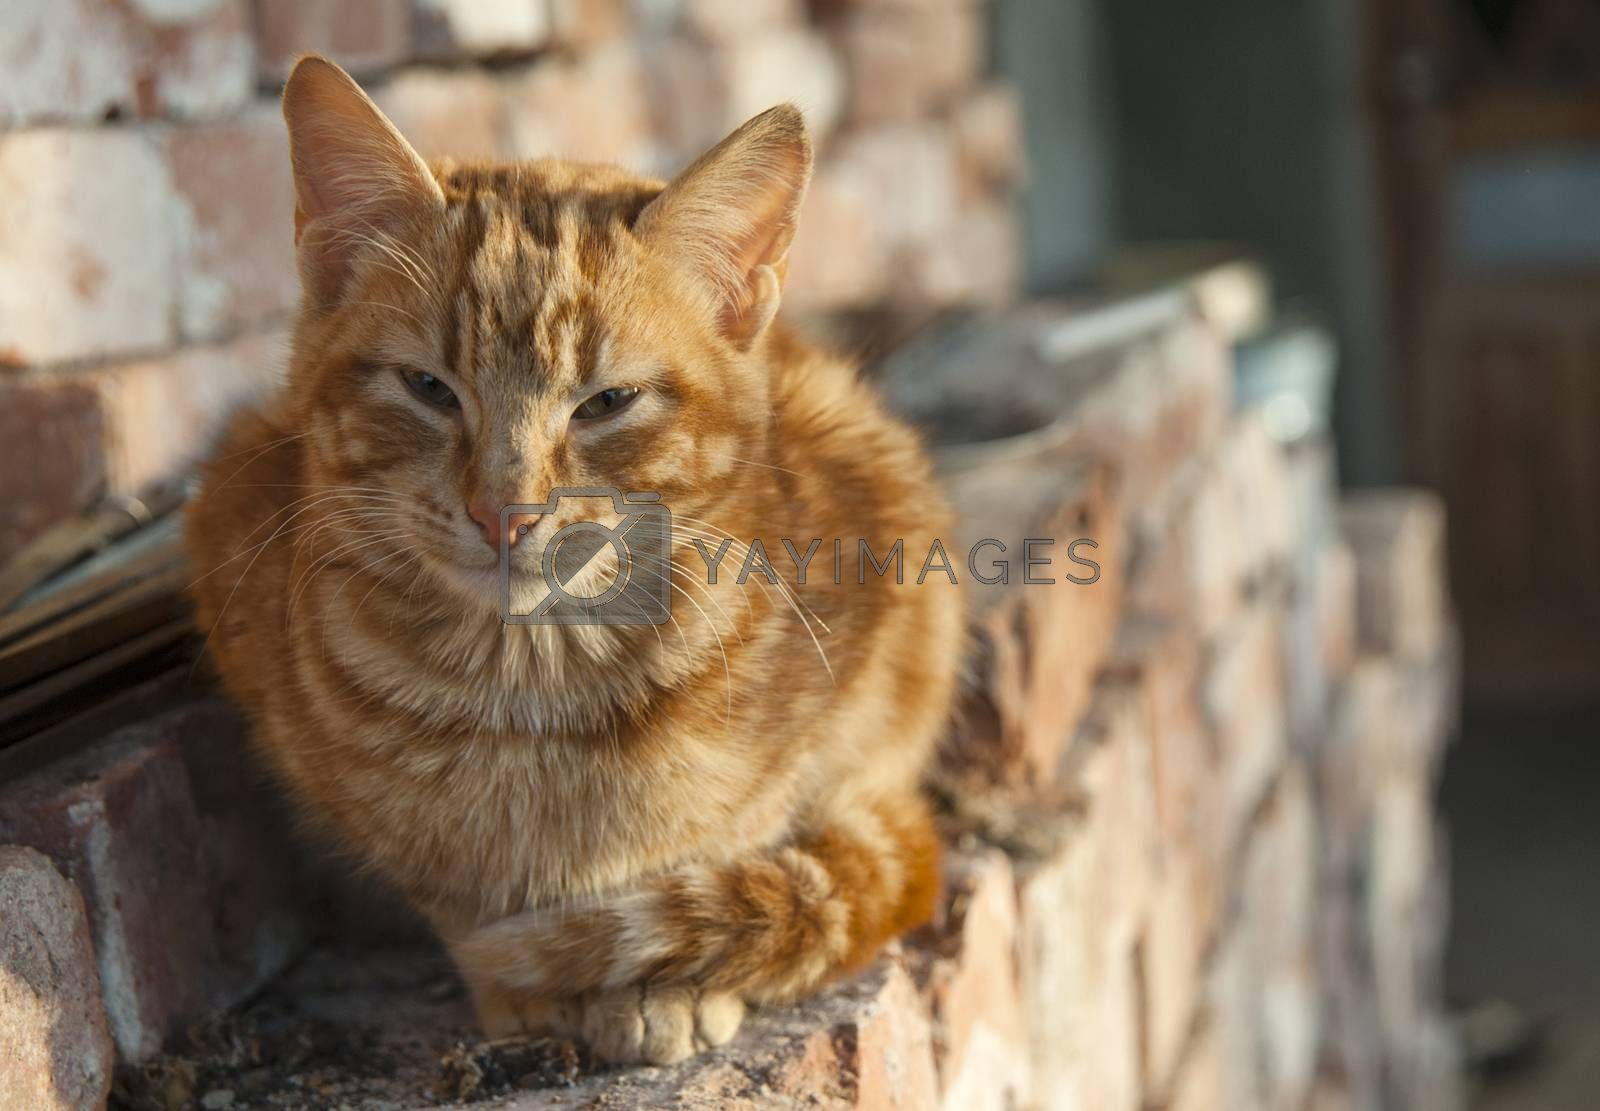 A red cat sits on a pile of red bricks.